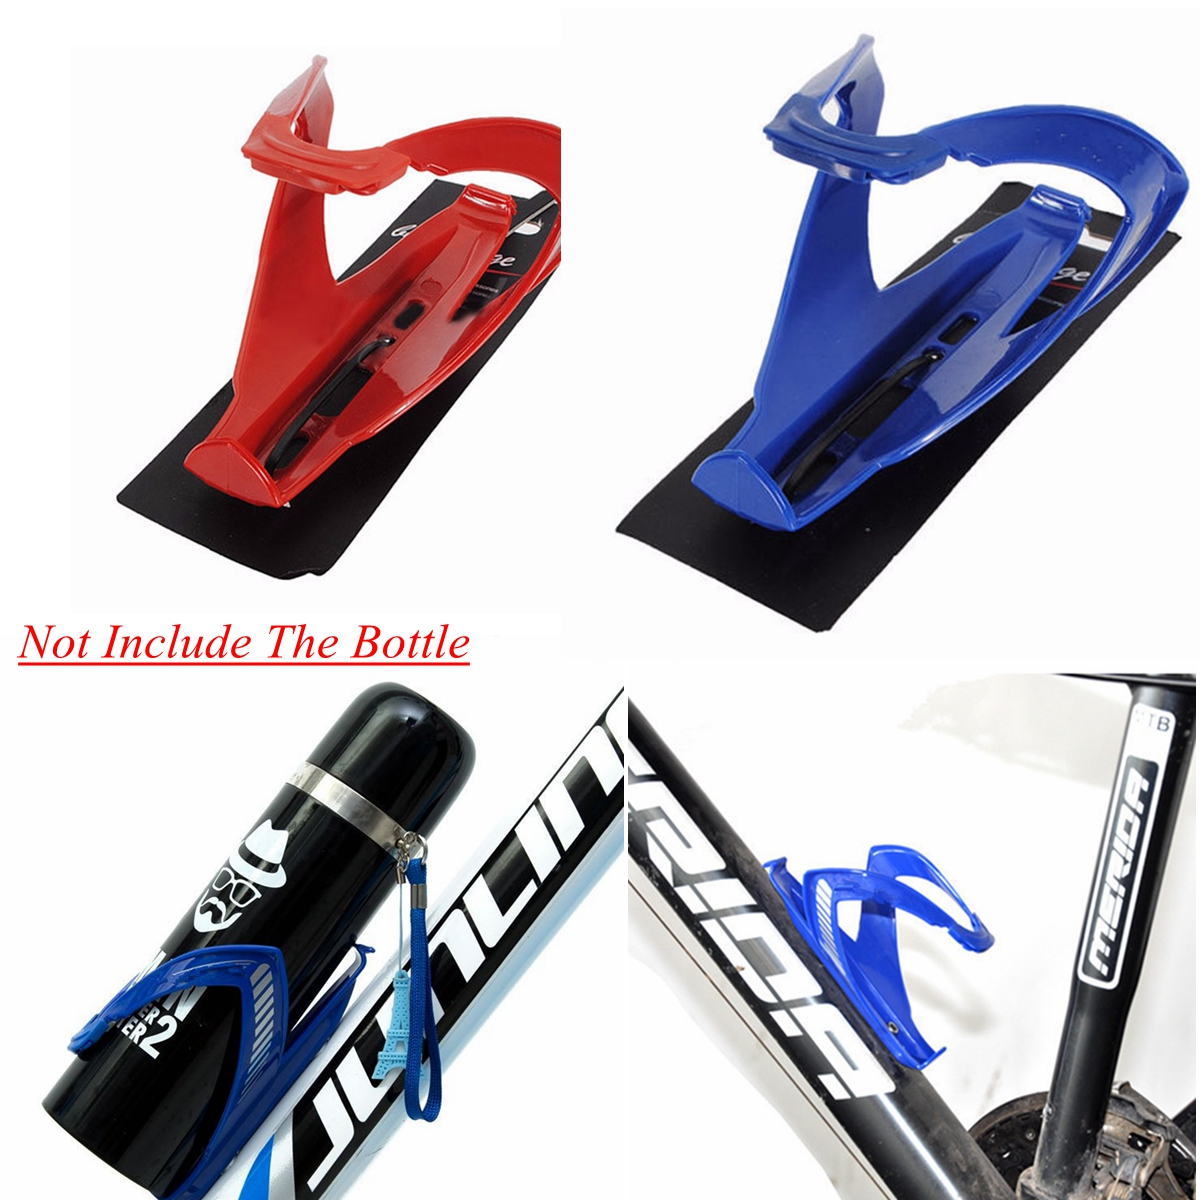 4 pcs Light-weight Bike Water Bottle Drinks Holder Carrier Cage for Bike Bicycle Cycle Cycling Glass Fiber Water Bottle Clamp